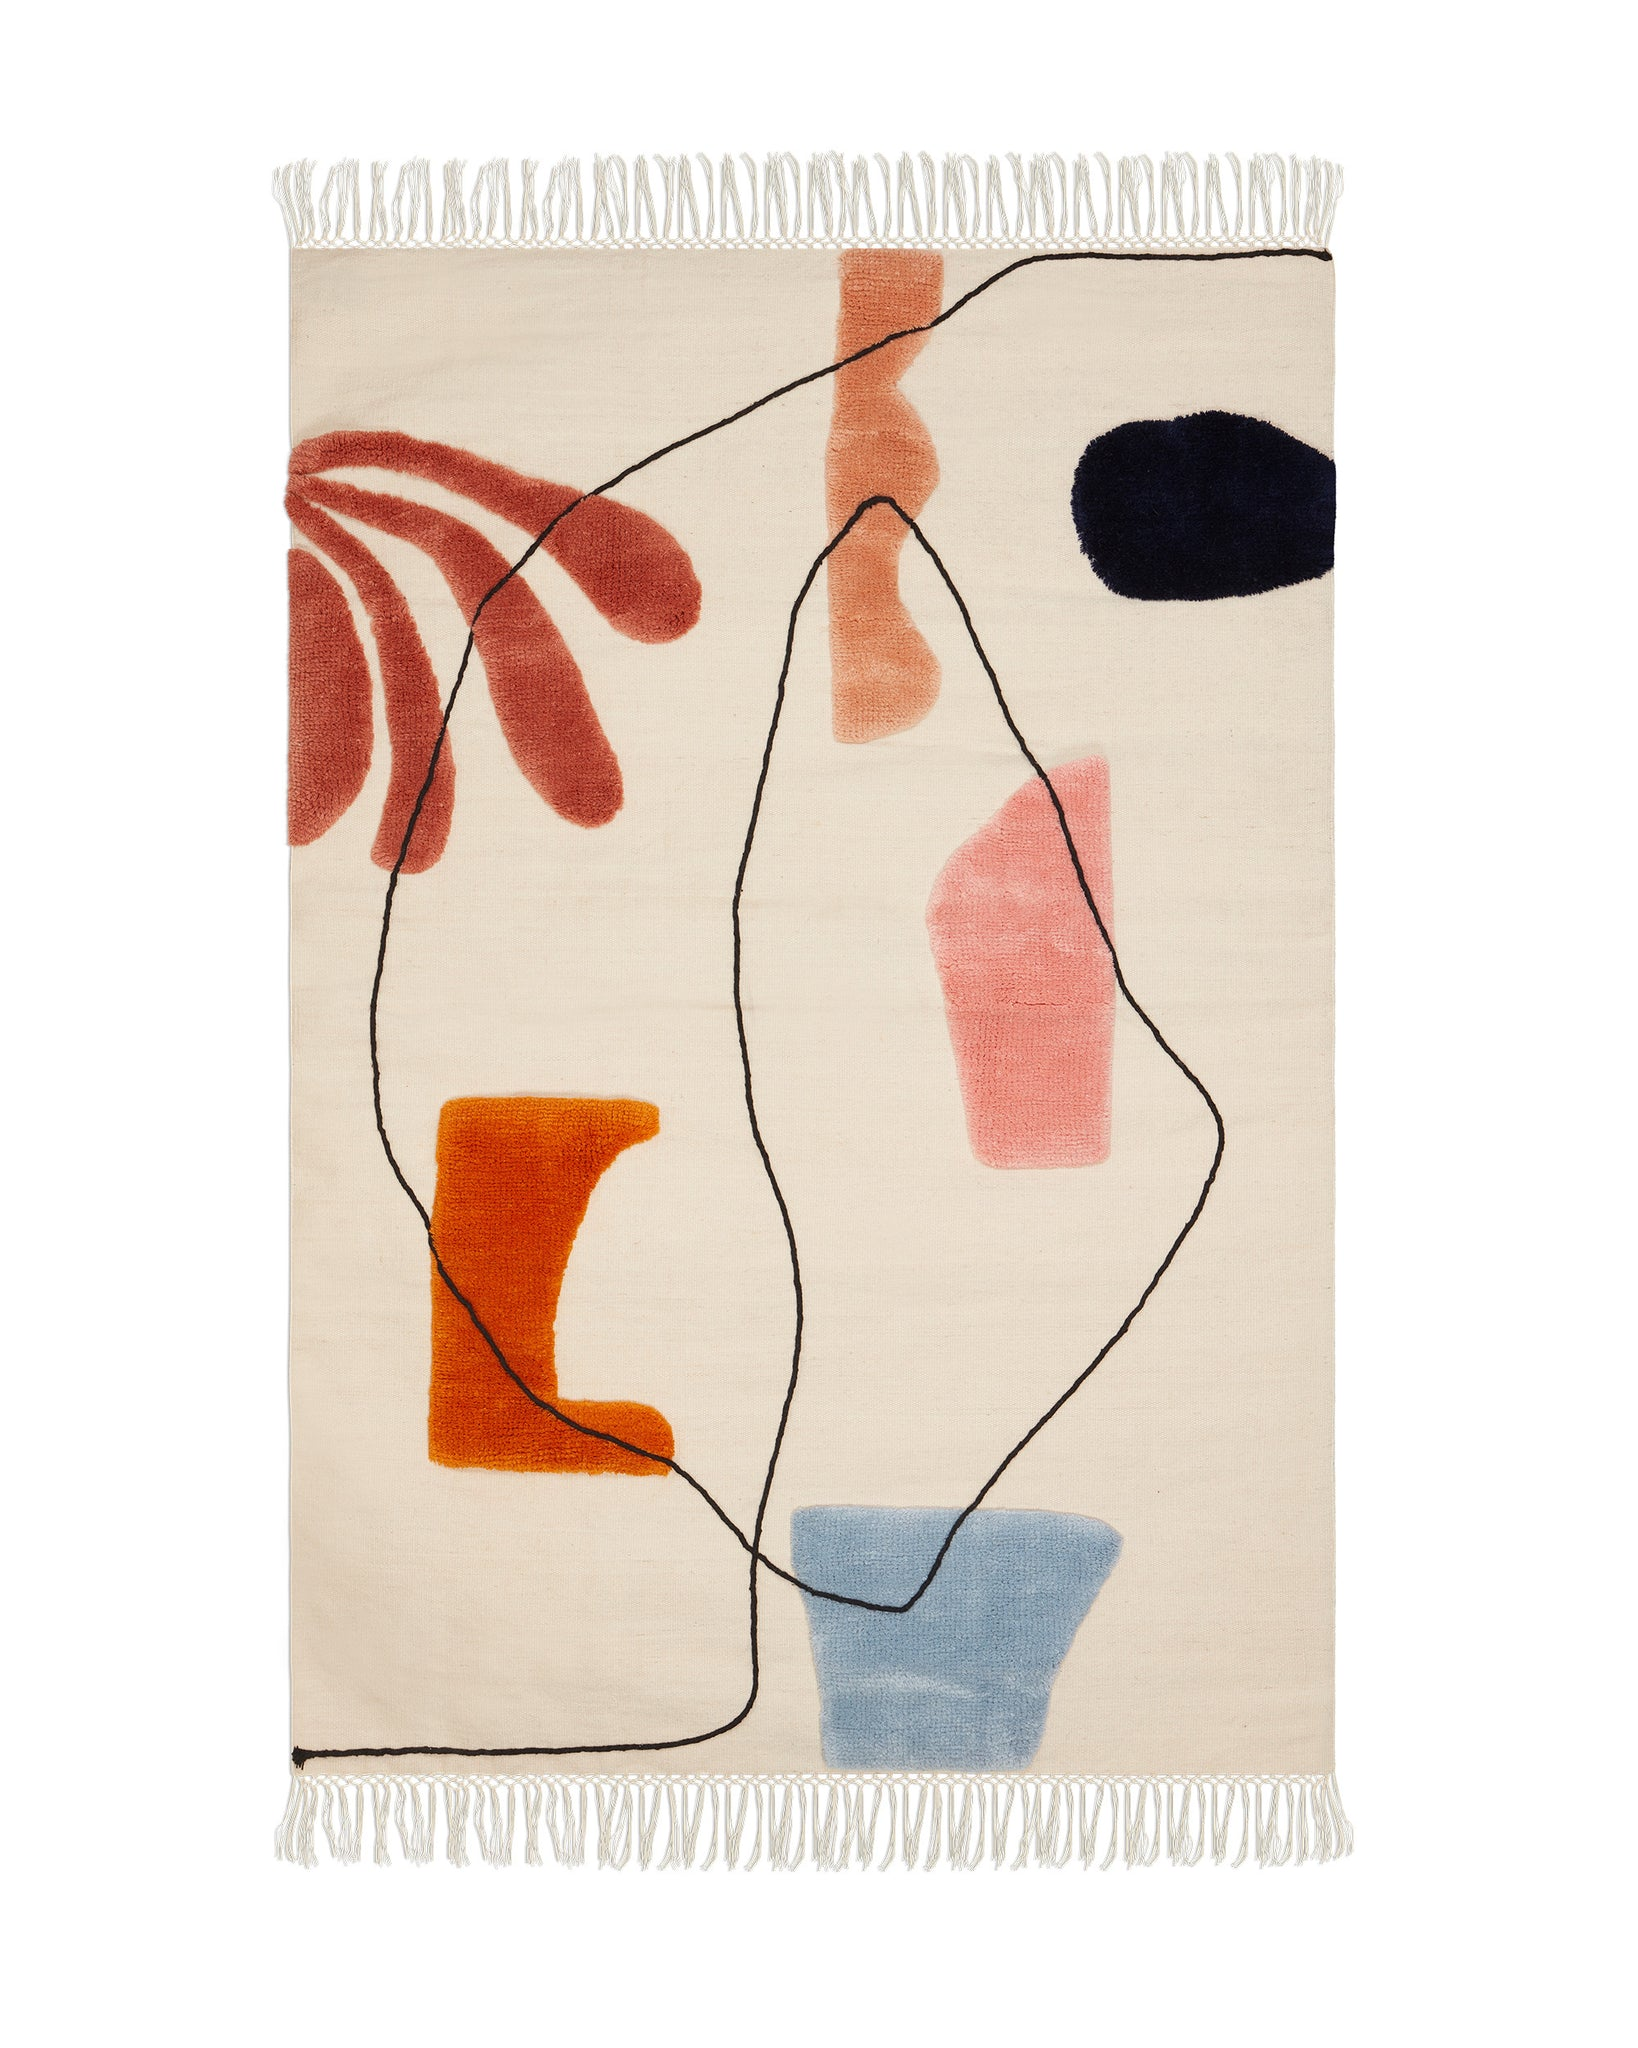 Studio Proba Blanket or Wall Hanging on white background